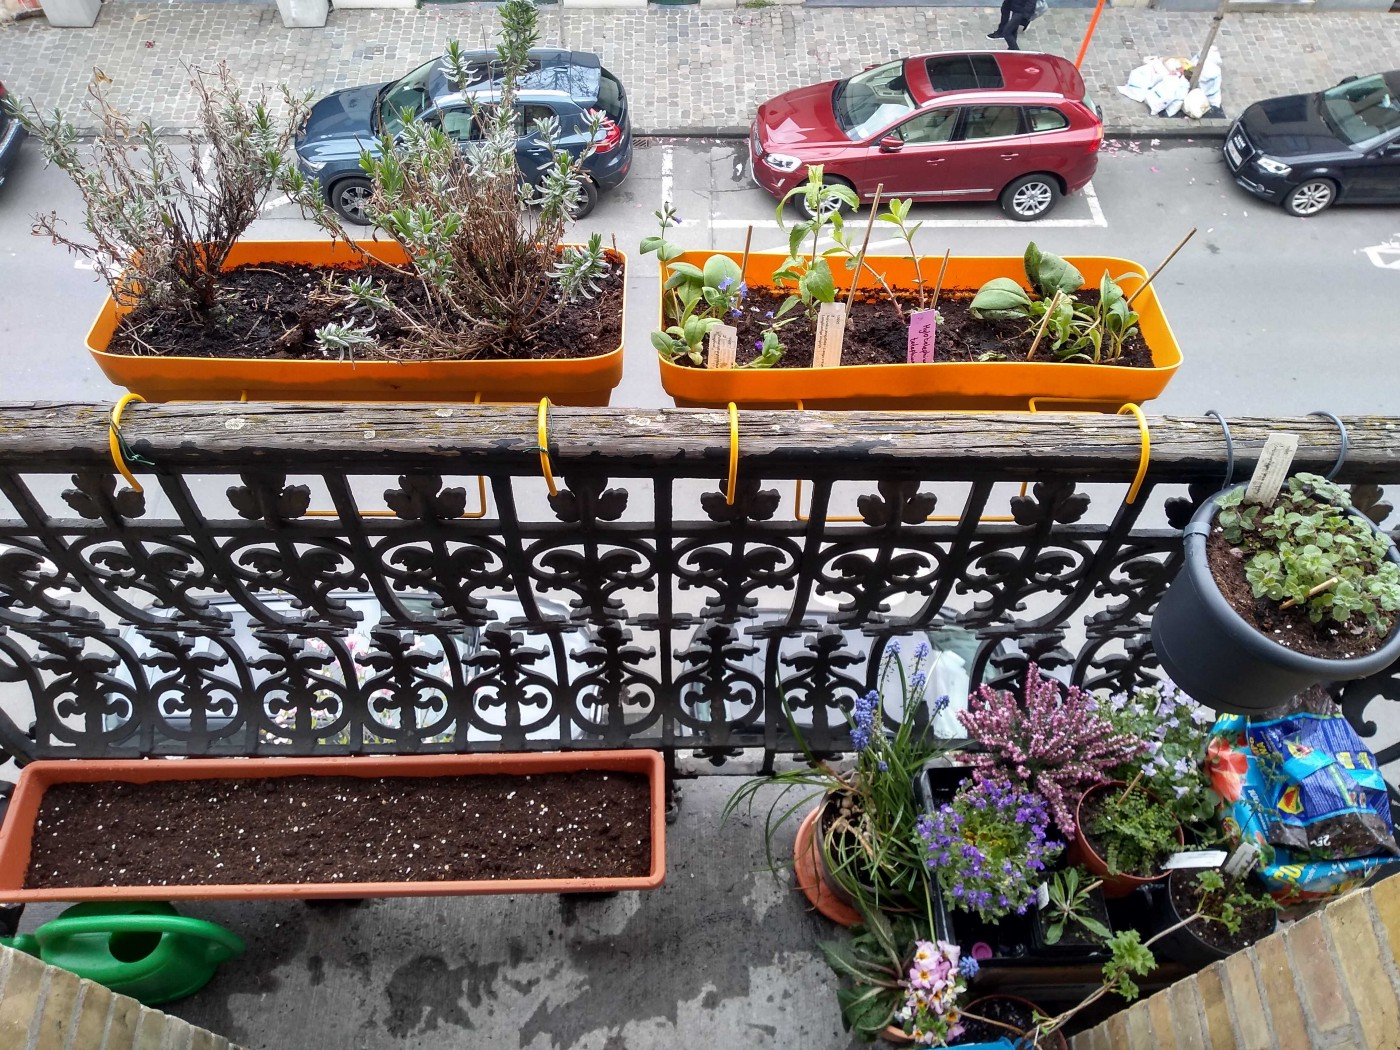 Pollinator balcony or pollinator garden with insect hotel in city apartment for bees, butterflies, and other pollinators